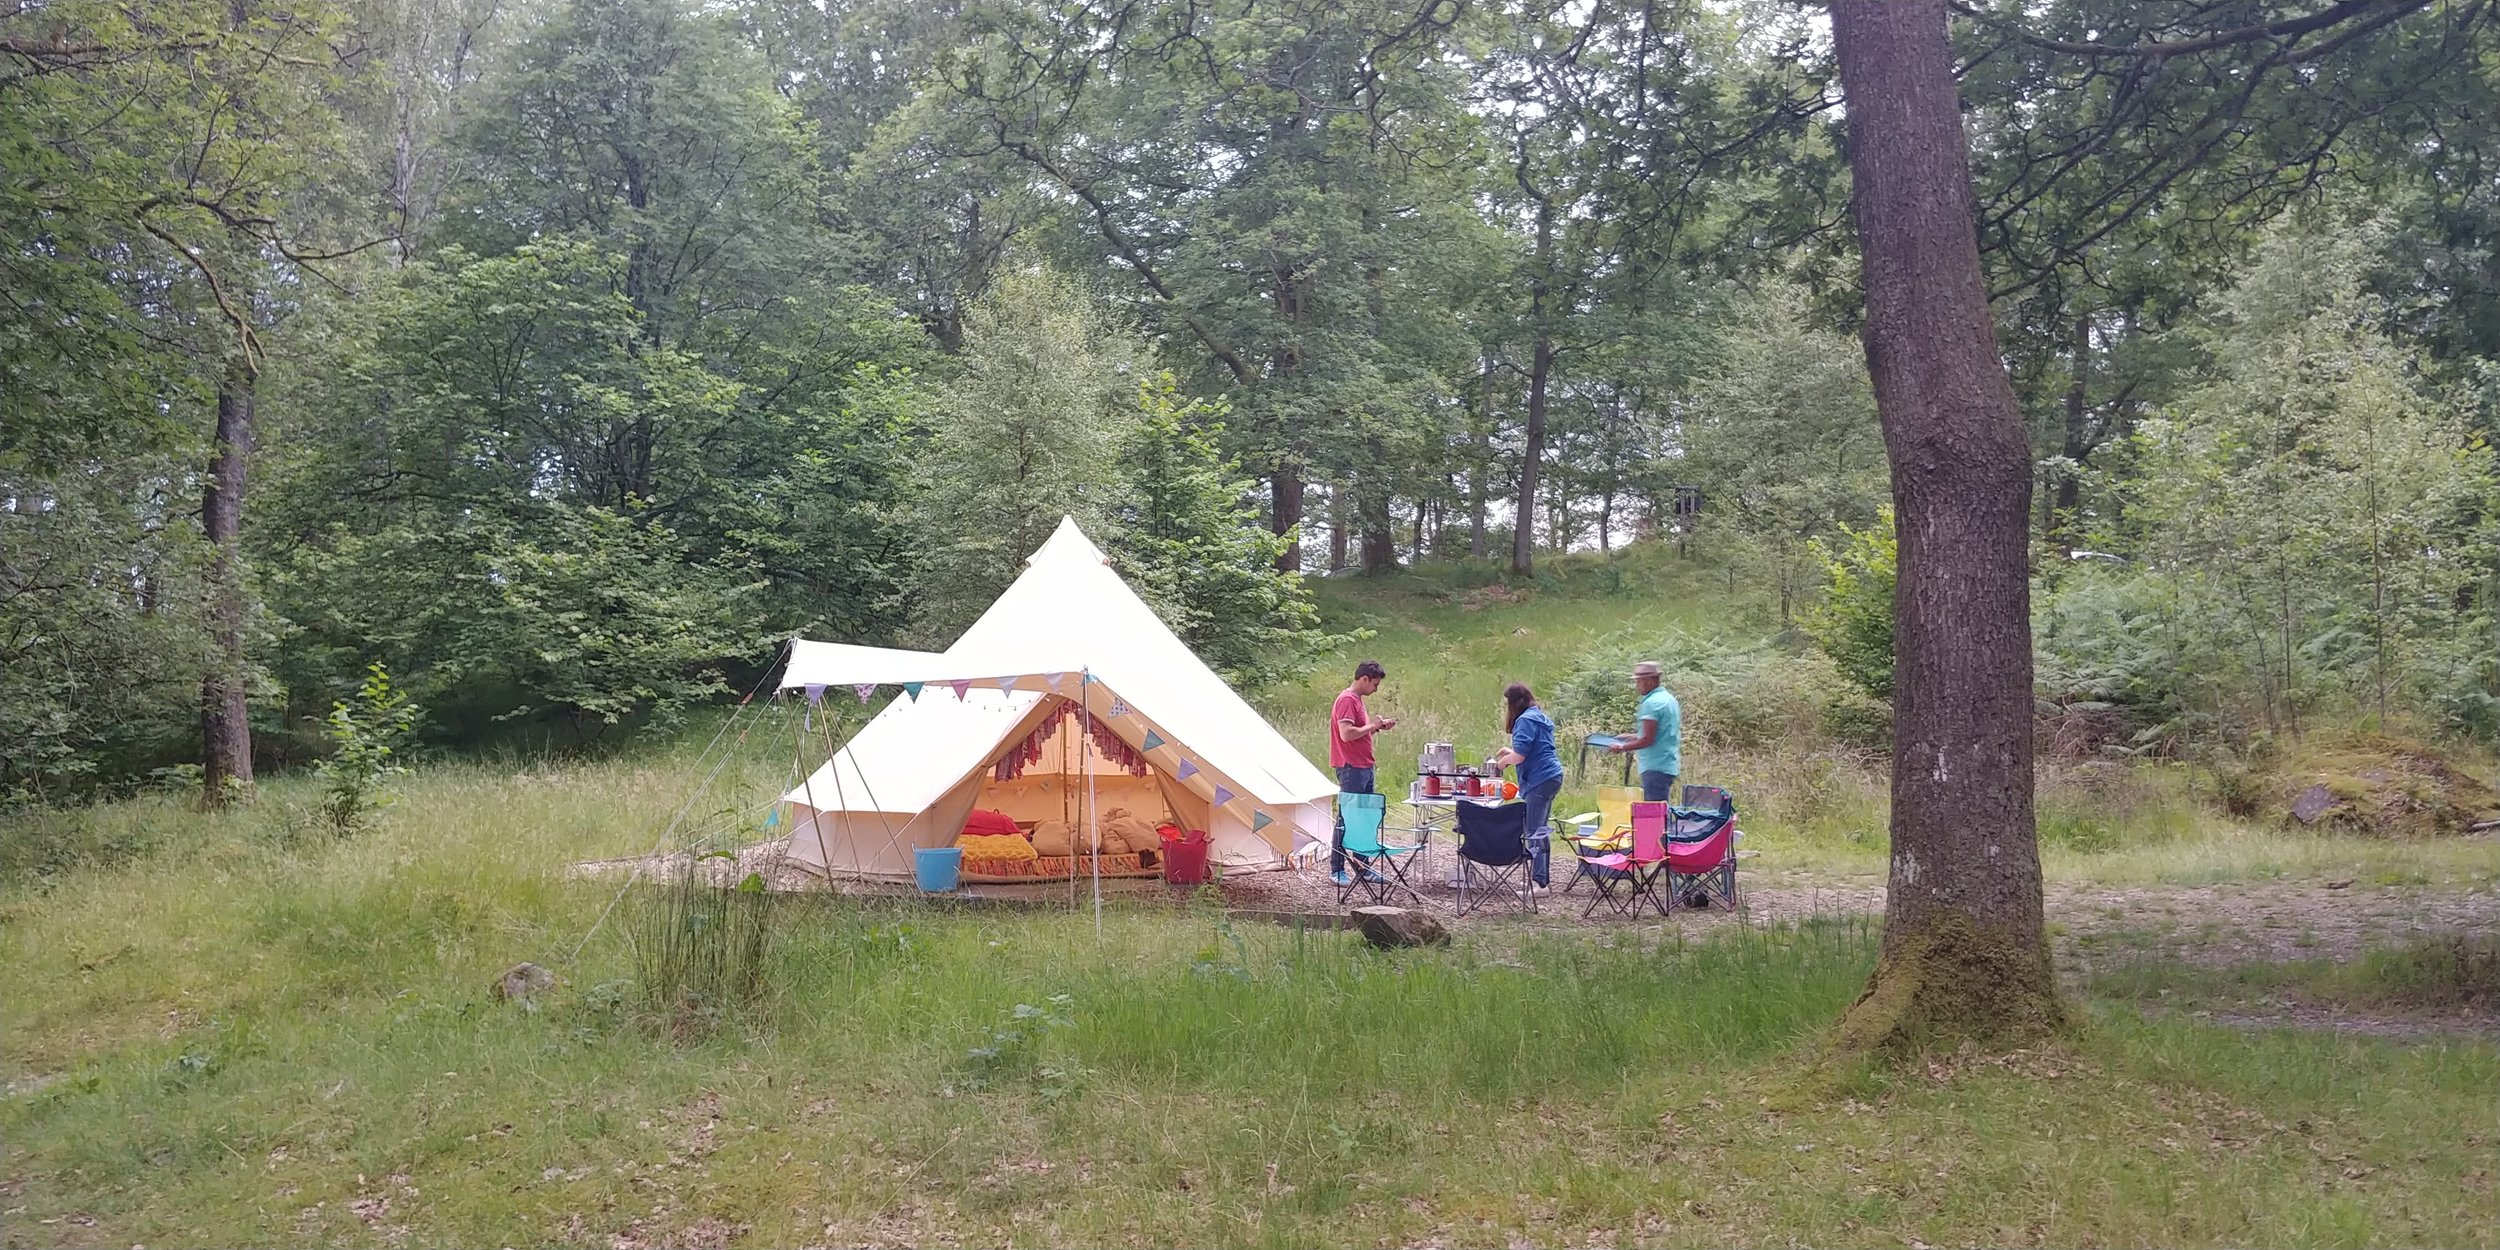 What a great spot. The pitch is covered in woodchip, which is understandable considering the location, but made pitching a bit tricky. We stretched our guy ropes so we could hammer our big bell tent pegs into the grass around the pitch, and used our rock pegs to go into the woodchip.